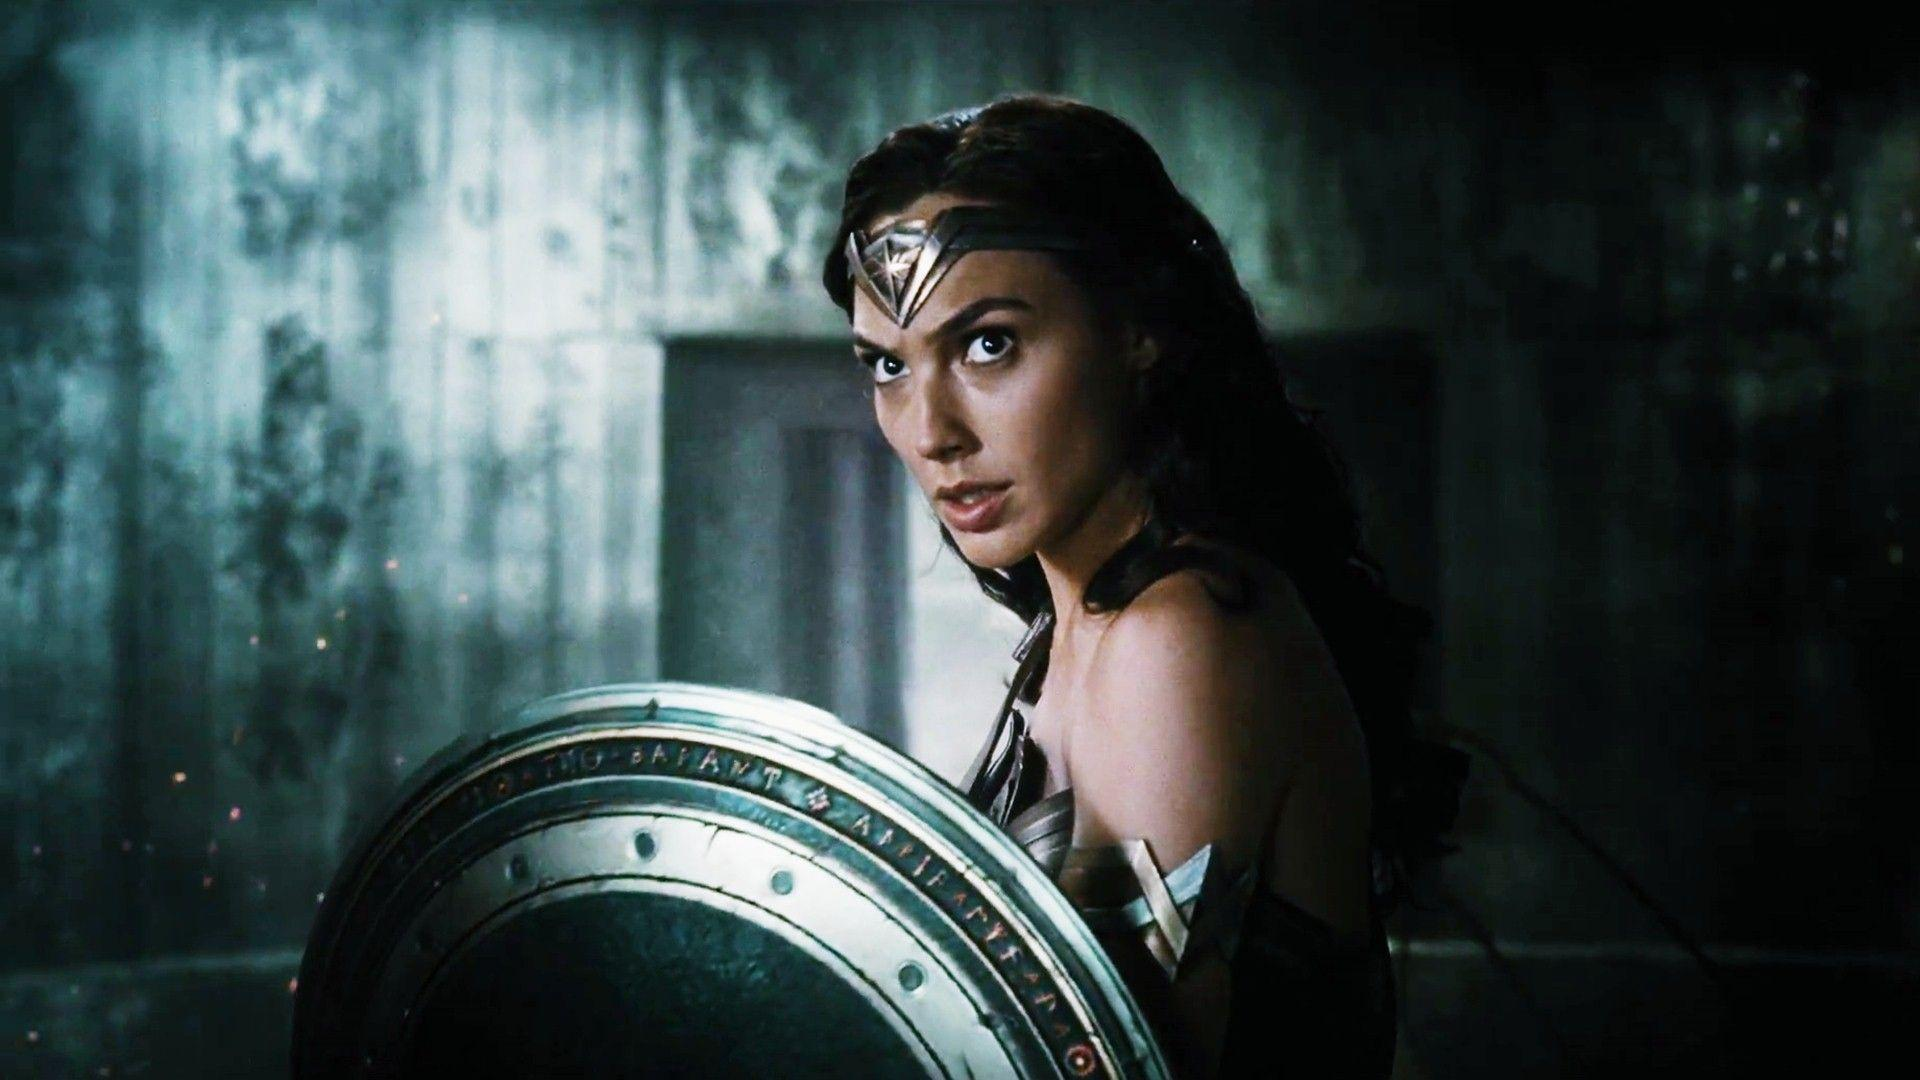 Wonder Woman Wallpapers HD Backgrounds, Images, Pics, Photos Free ...